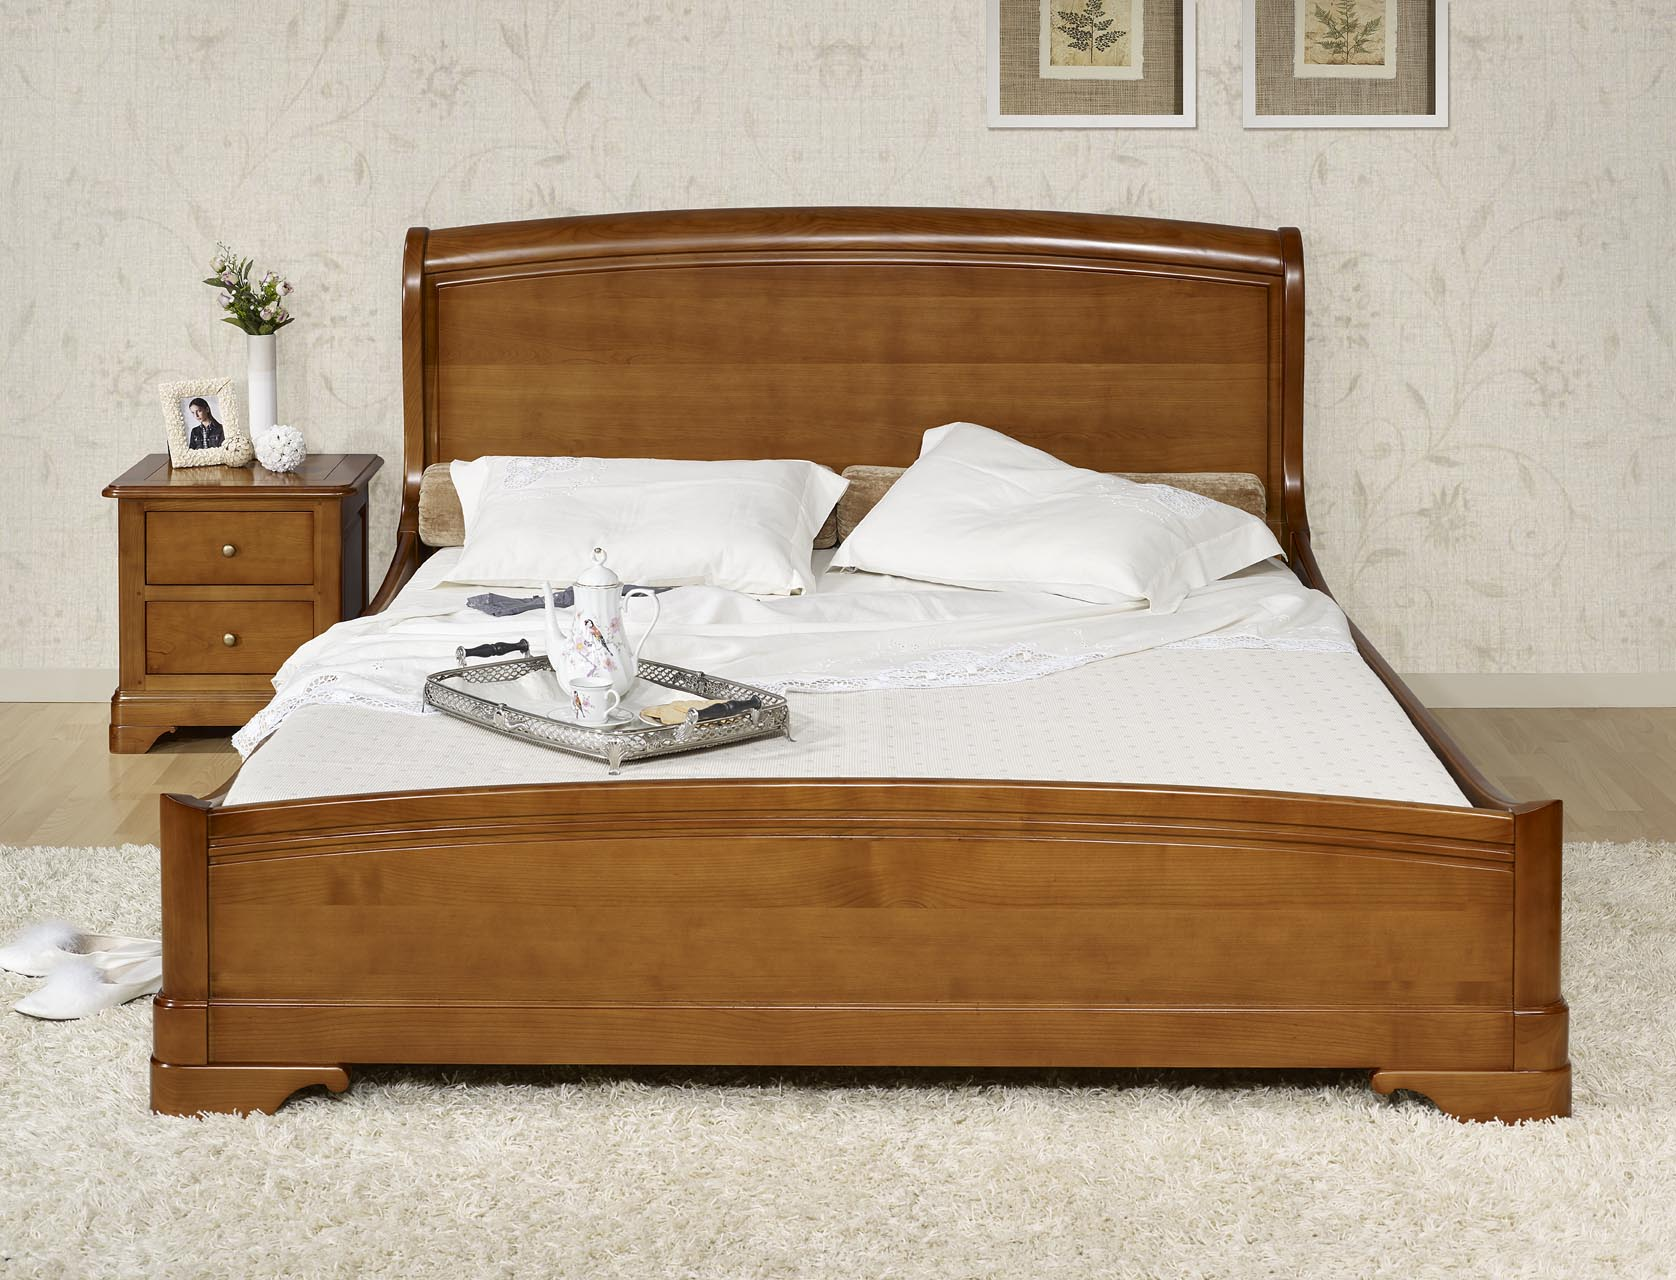 Bedombouw 160x200 Beautiful Heimdal Bed Xfront With